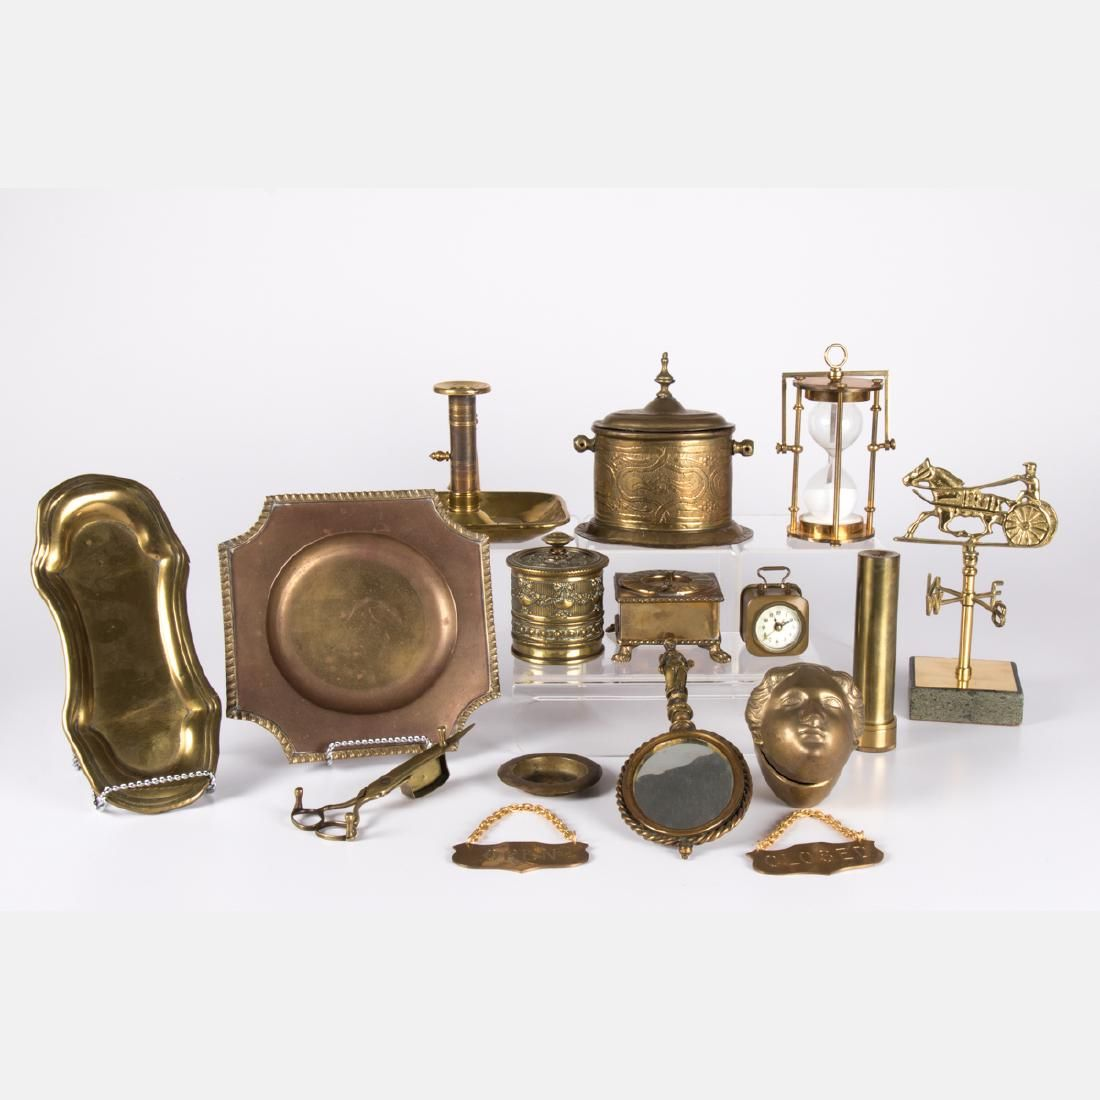 A Miscellaneous Collection of Brass Serving and